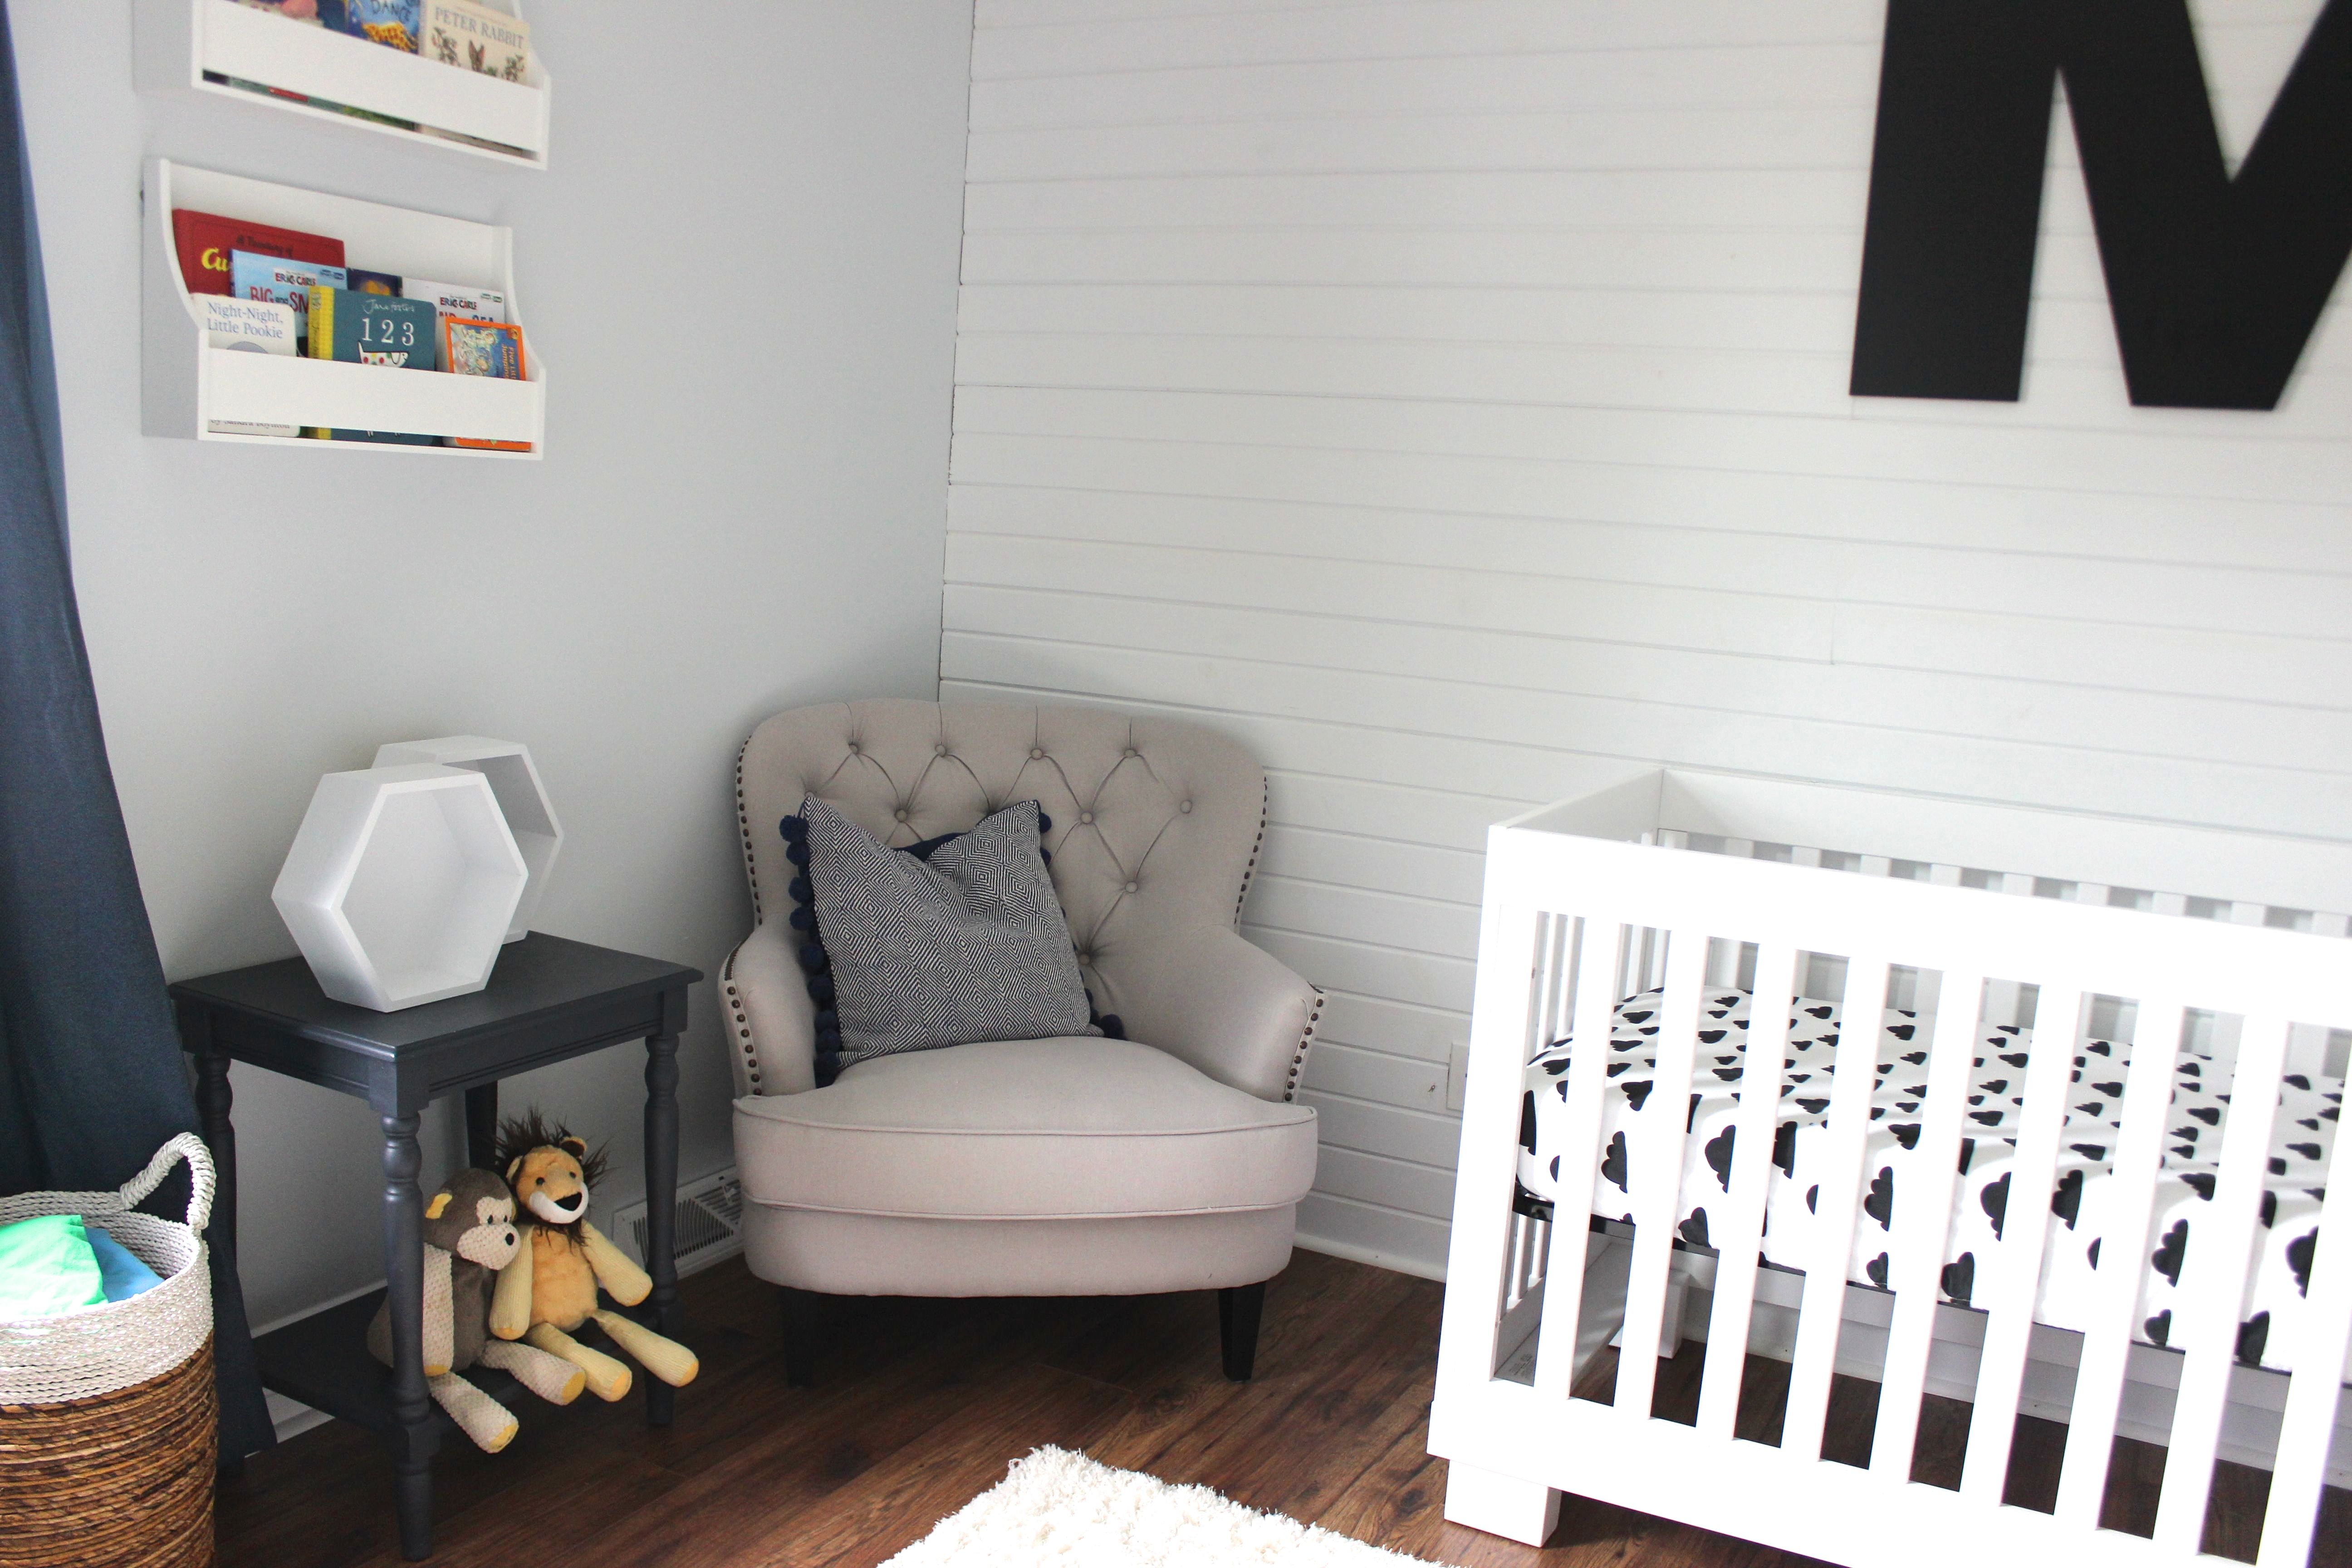 DIY Shiplap Wall For Next Week But You Can See What An Impact It Makes In A Room We Cannot Wait To Carry This Through Few Other Spaces Our Home